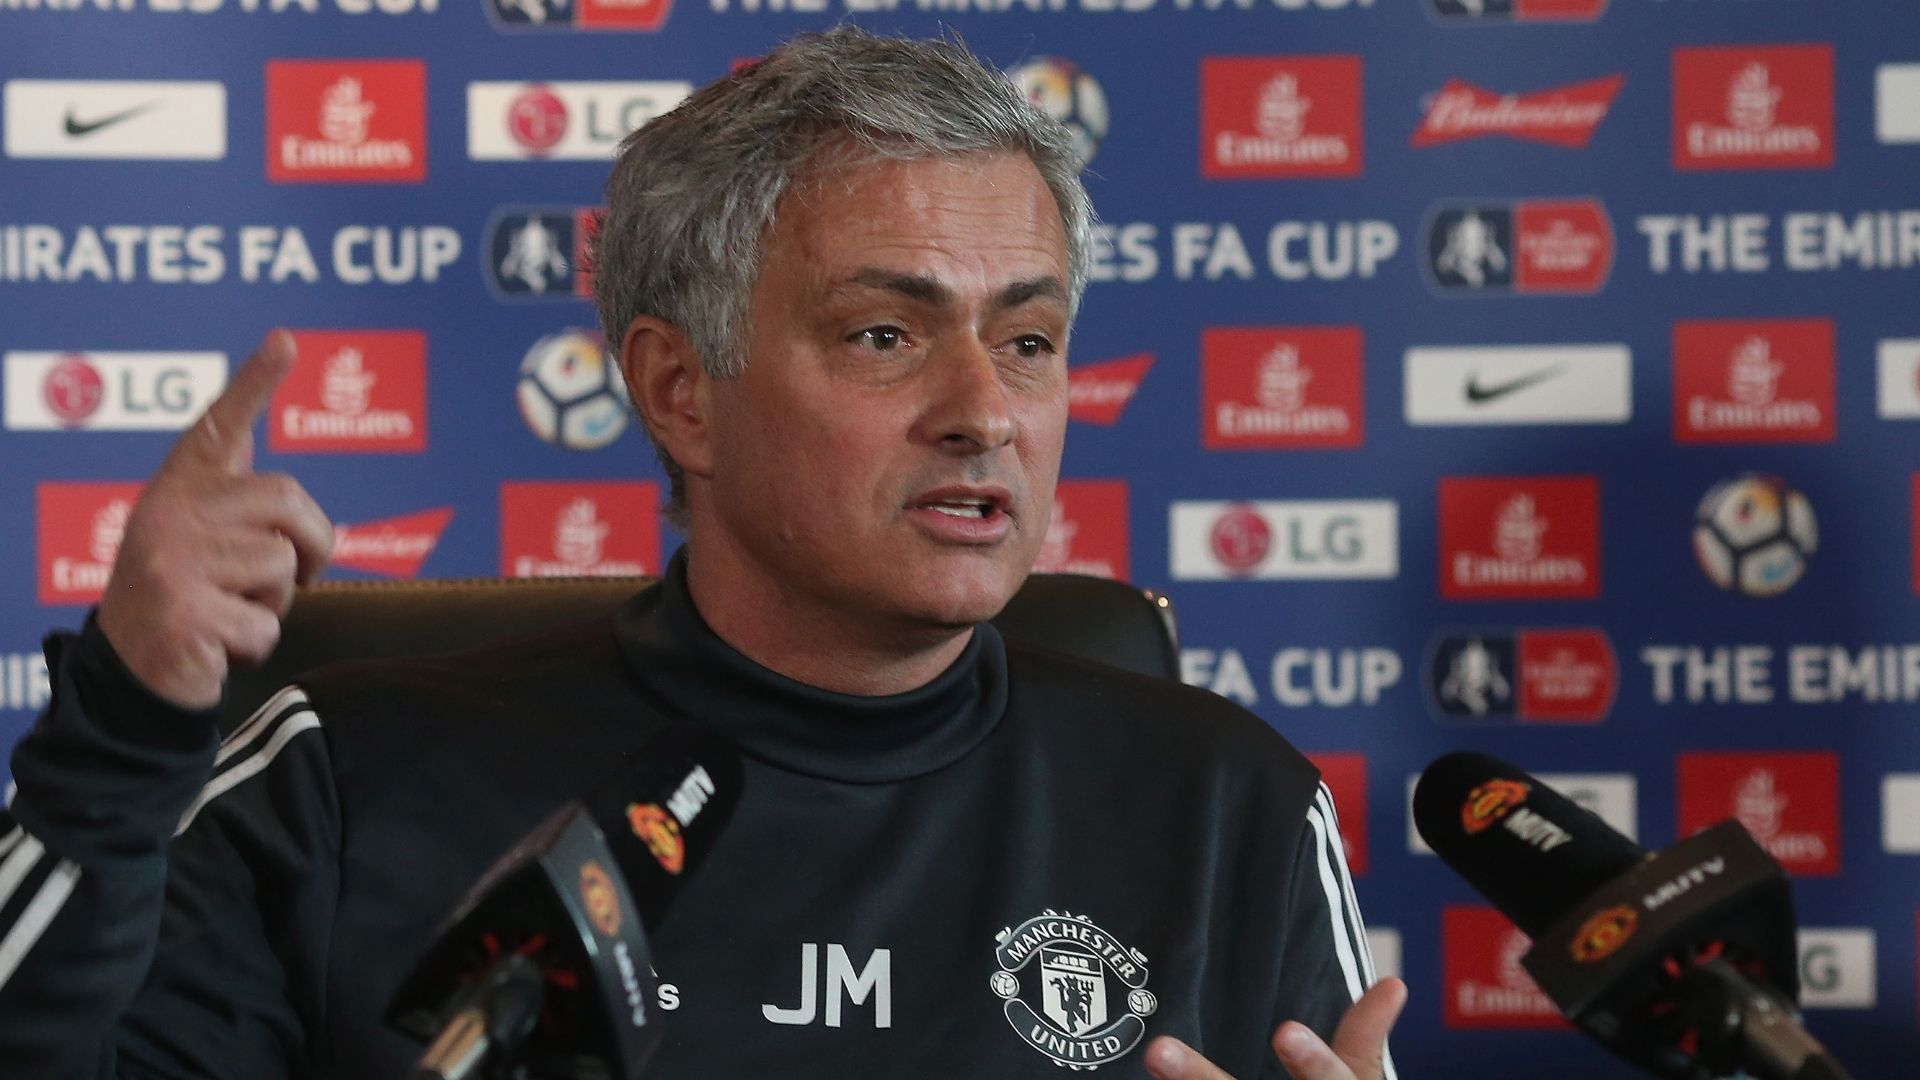 'Difficult' for Utd if City keep spending - Mou